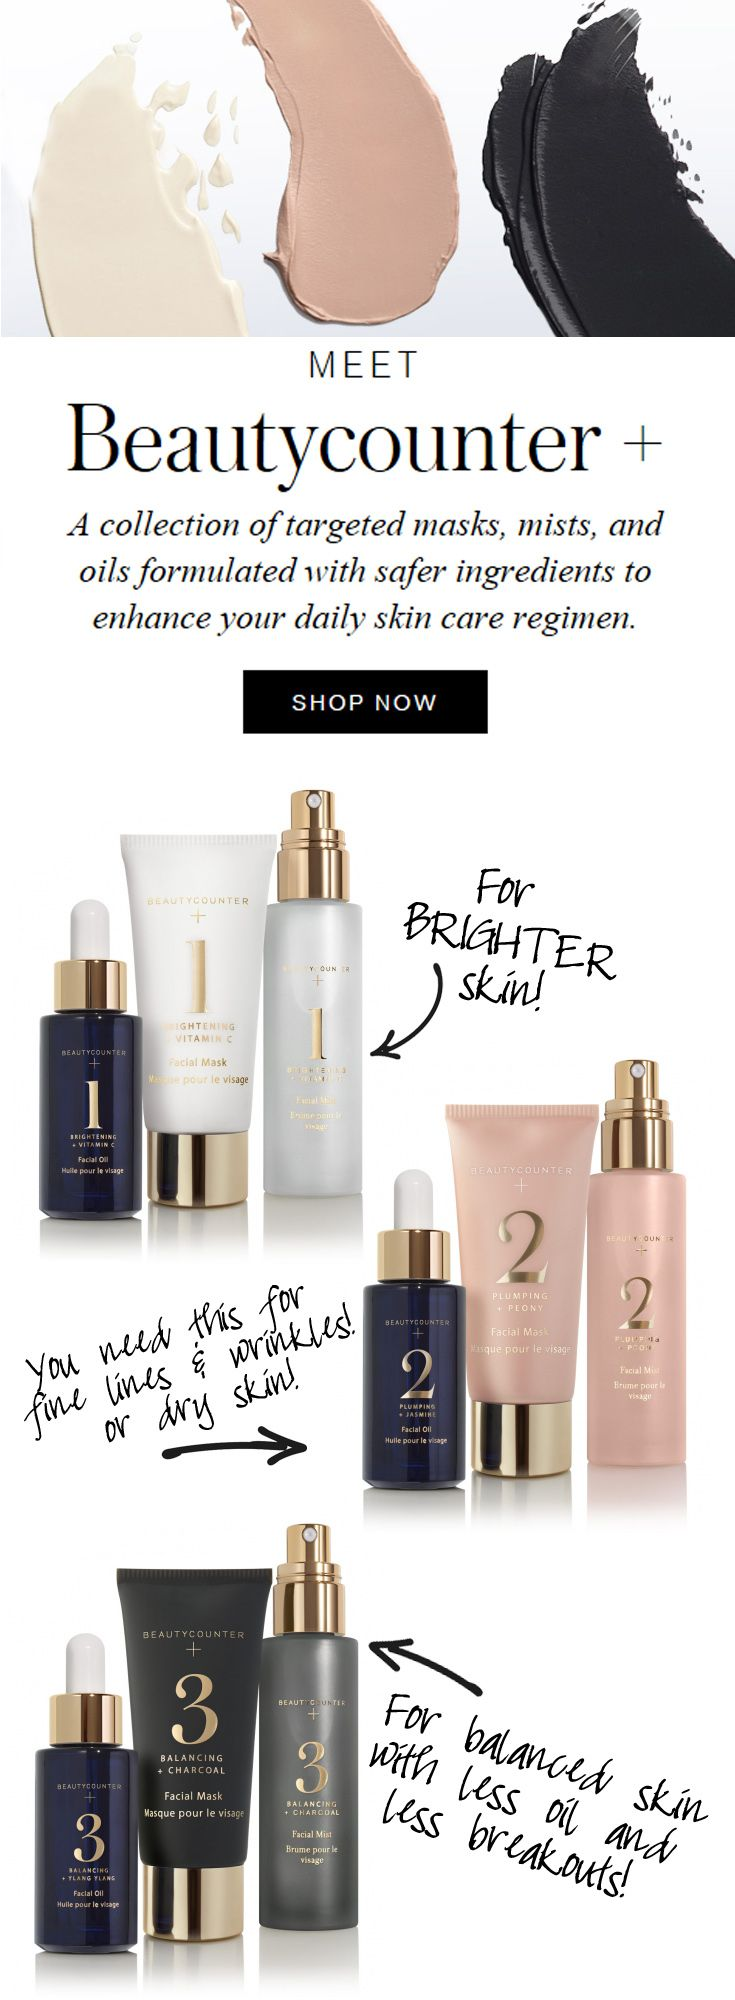 You're going to be amazed at what these collections can do for your skin. Best for brightening dull skin, fighting dryness, fine lines and wrinkles, acne and oil issues. You'll love how it feels! SEARCH::: Beautycounter award winning best seller top rated skin care no harmful chemicals healthy cosmetics makeup paraben free clean natural green organic coconut oil no bad ingredients to avoid skin treatment toxin free low toxicity anti-aging cream not tested on animals sensitive skin safe…